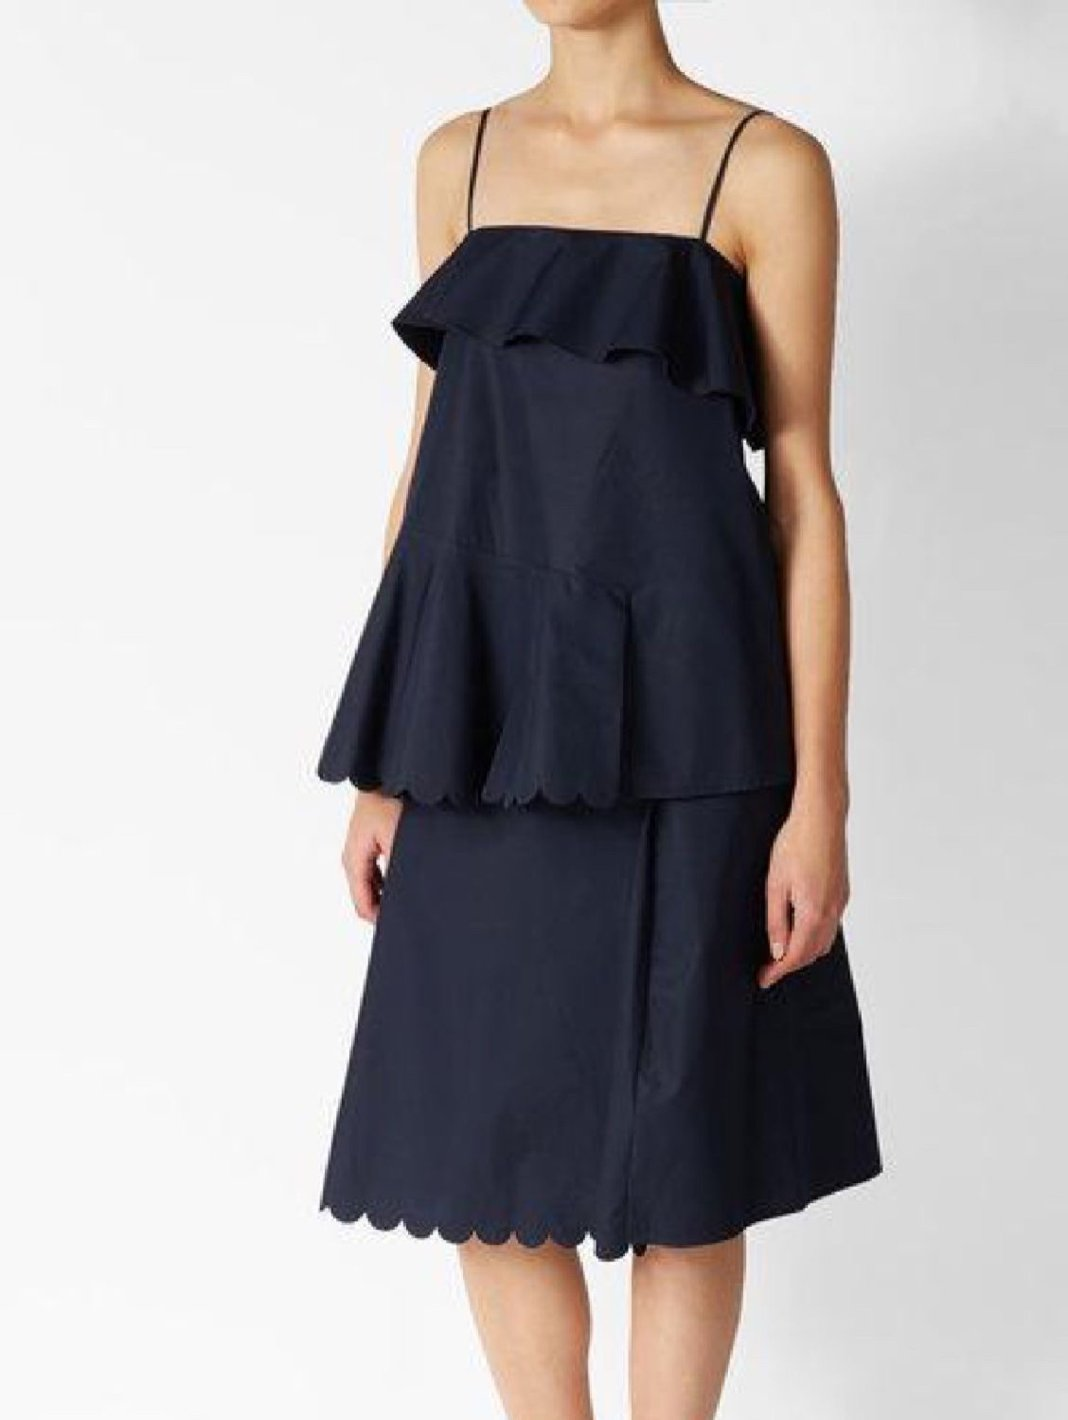 Scalloped Cotton Dress - The Bobby Boga